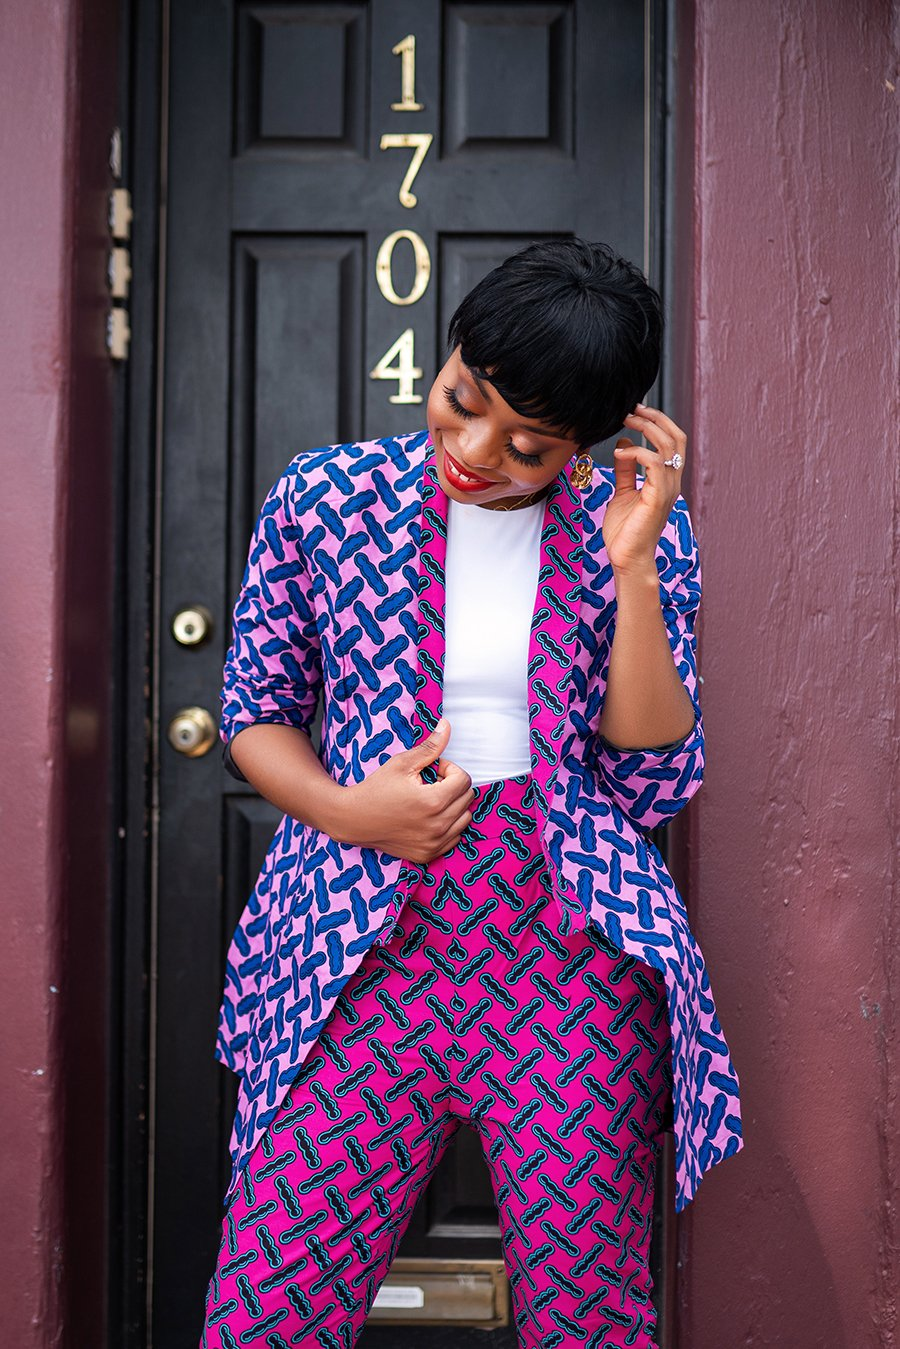 stella-adewunmi-of-jadore-fashion-blog-shares-tips-on-how-to-combine-prints